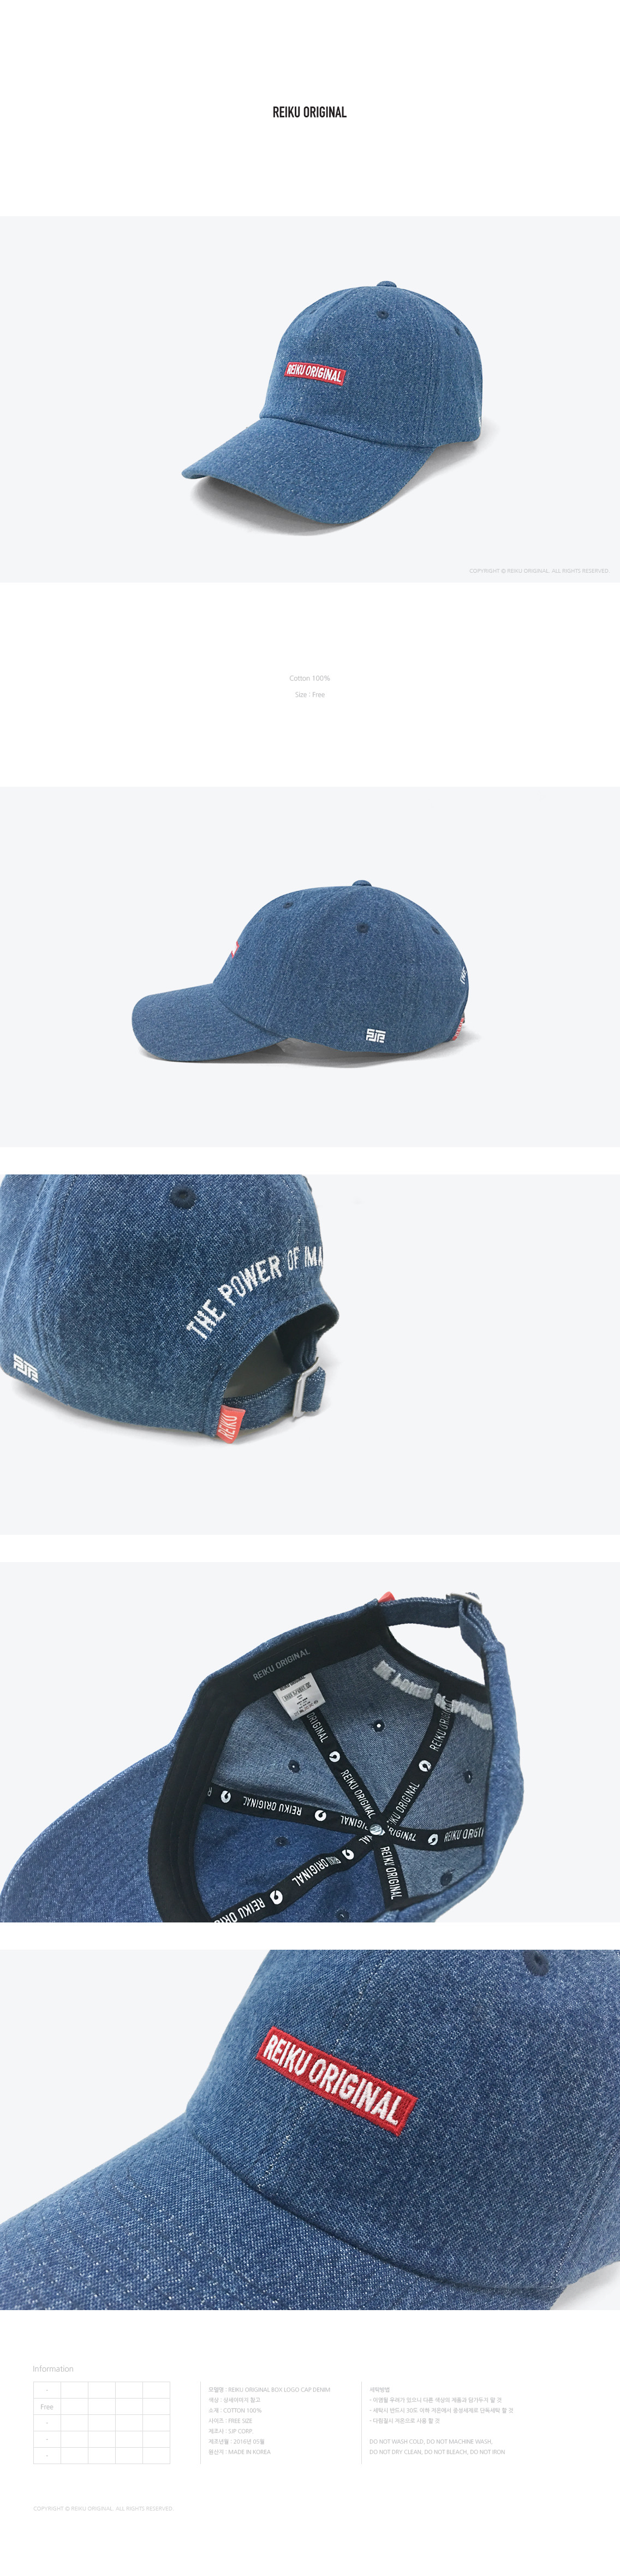 레이쿠(REIKU) [레이쿠] reiku original box logo cap denim 볼캡